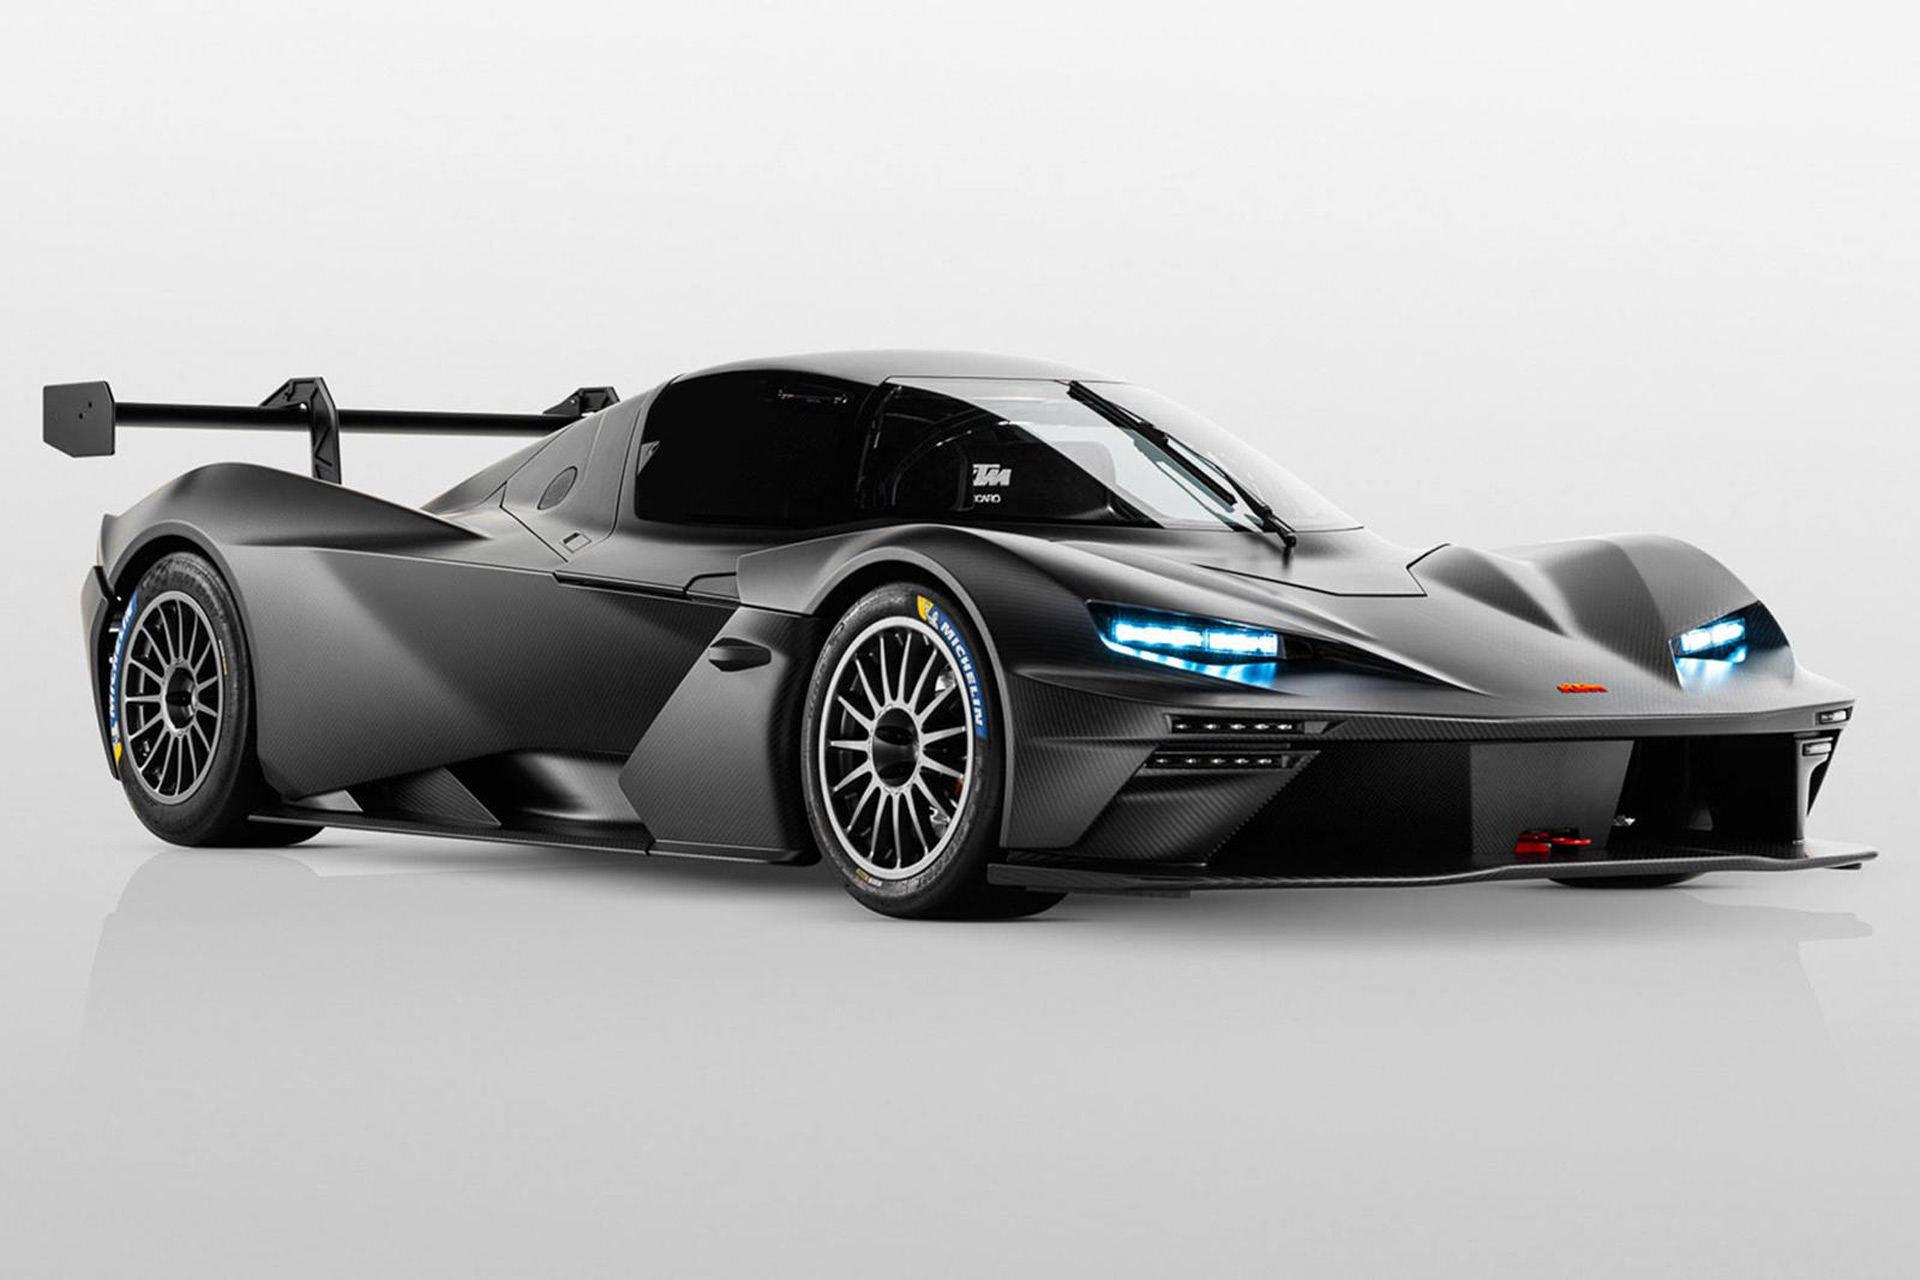 2021-ktm-x-bow-gtx-race-car_100765298_h